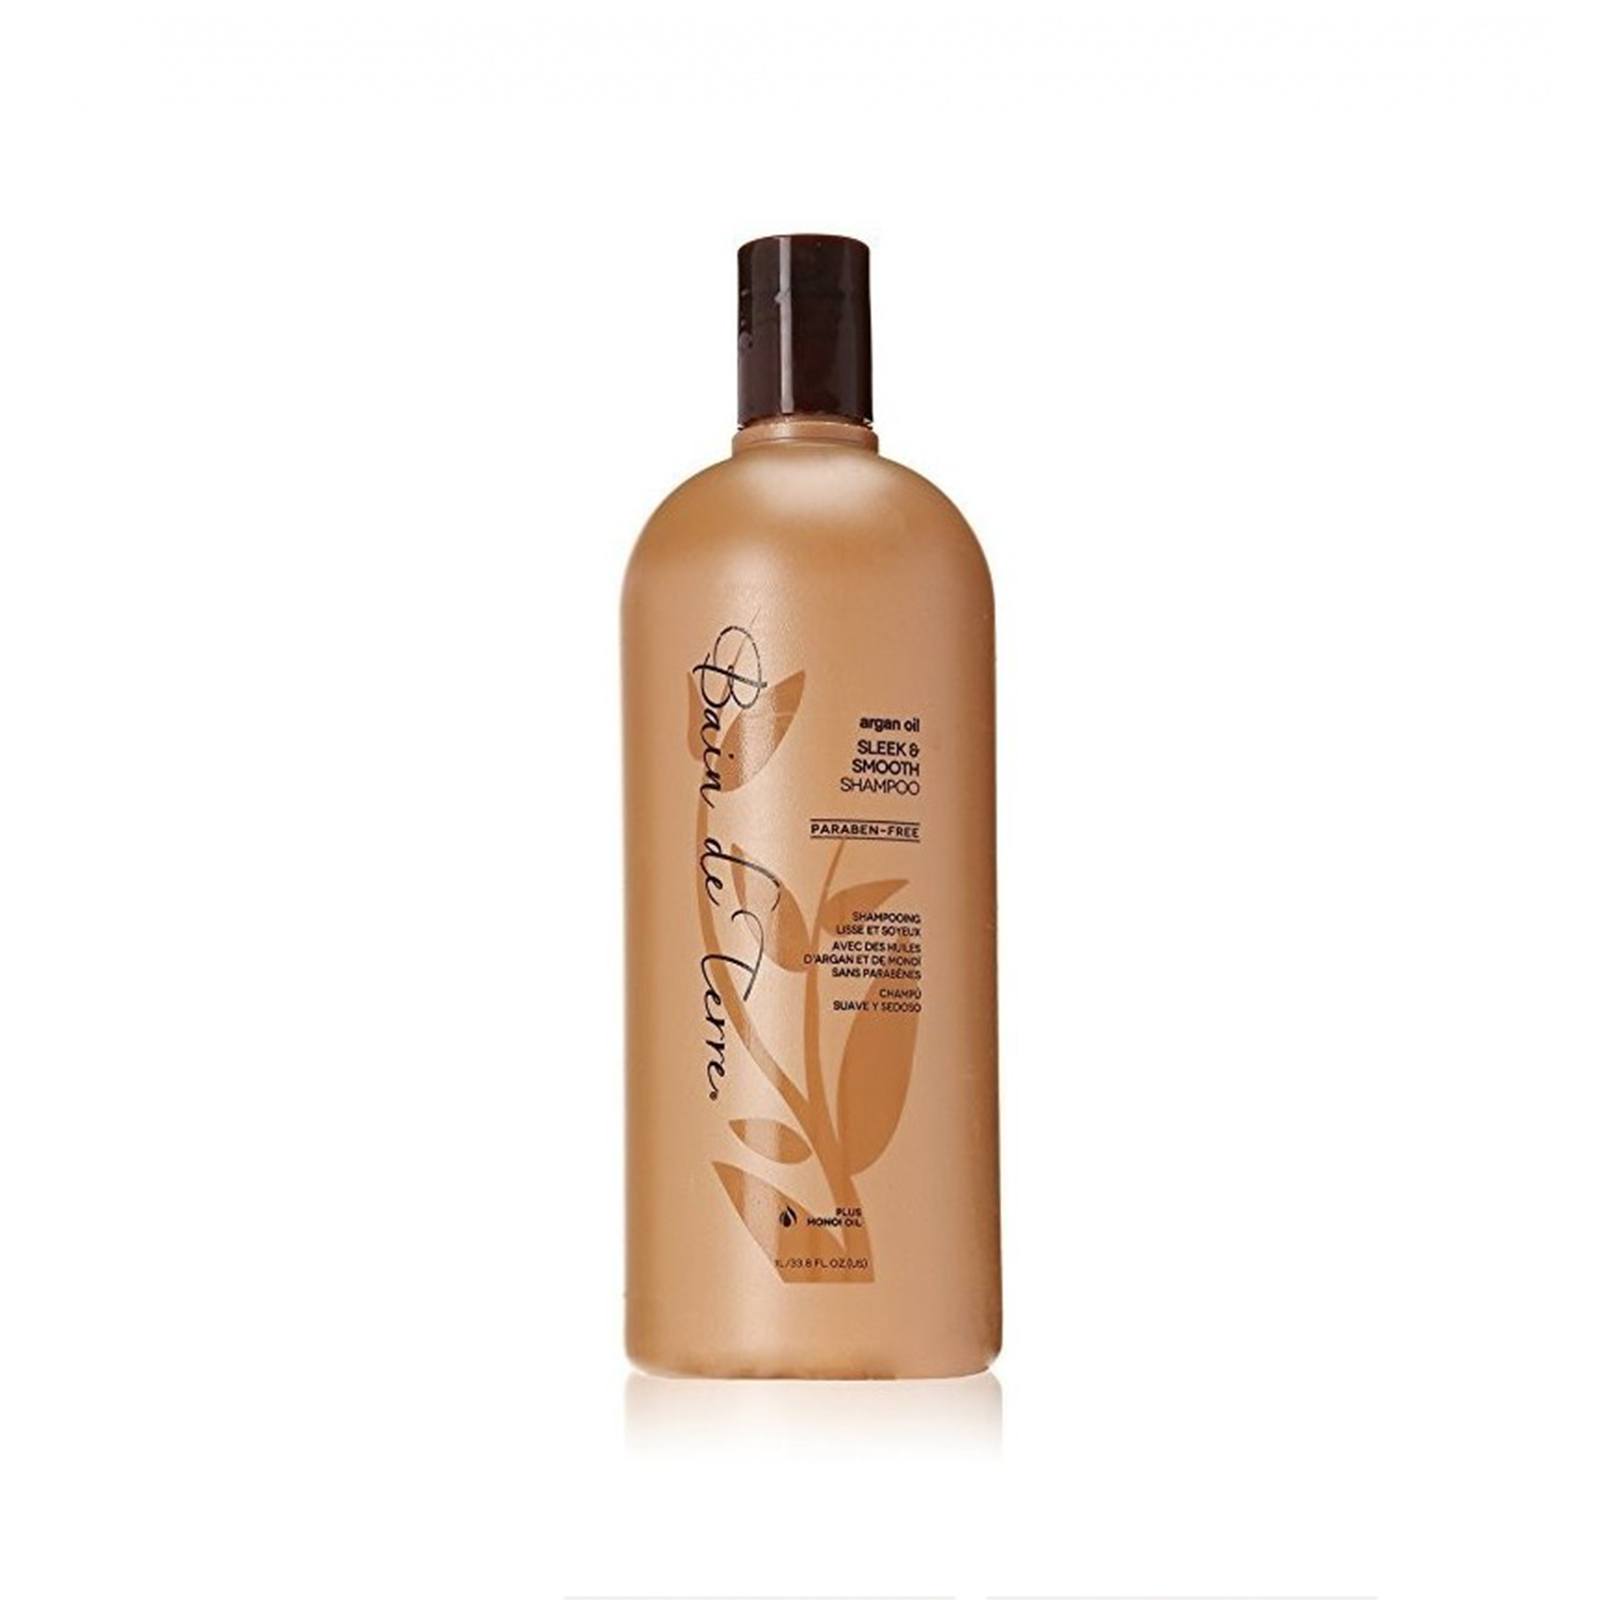 Bain De Terre Argan Oil Sleek & Smooth Shampoo (1000ml) | Gogobli